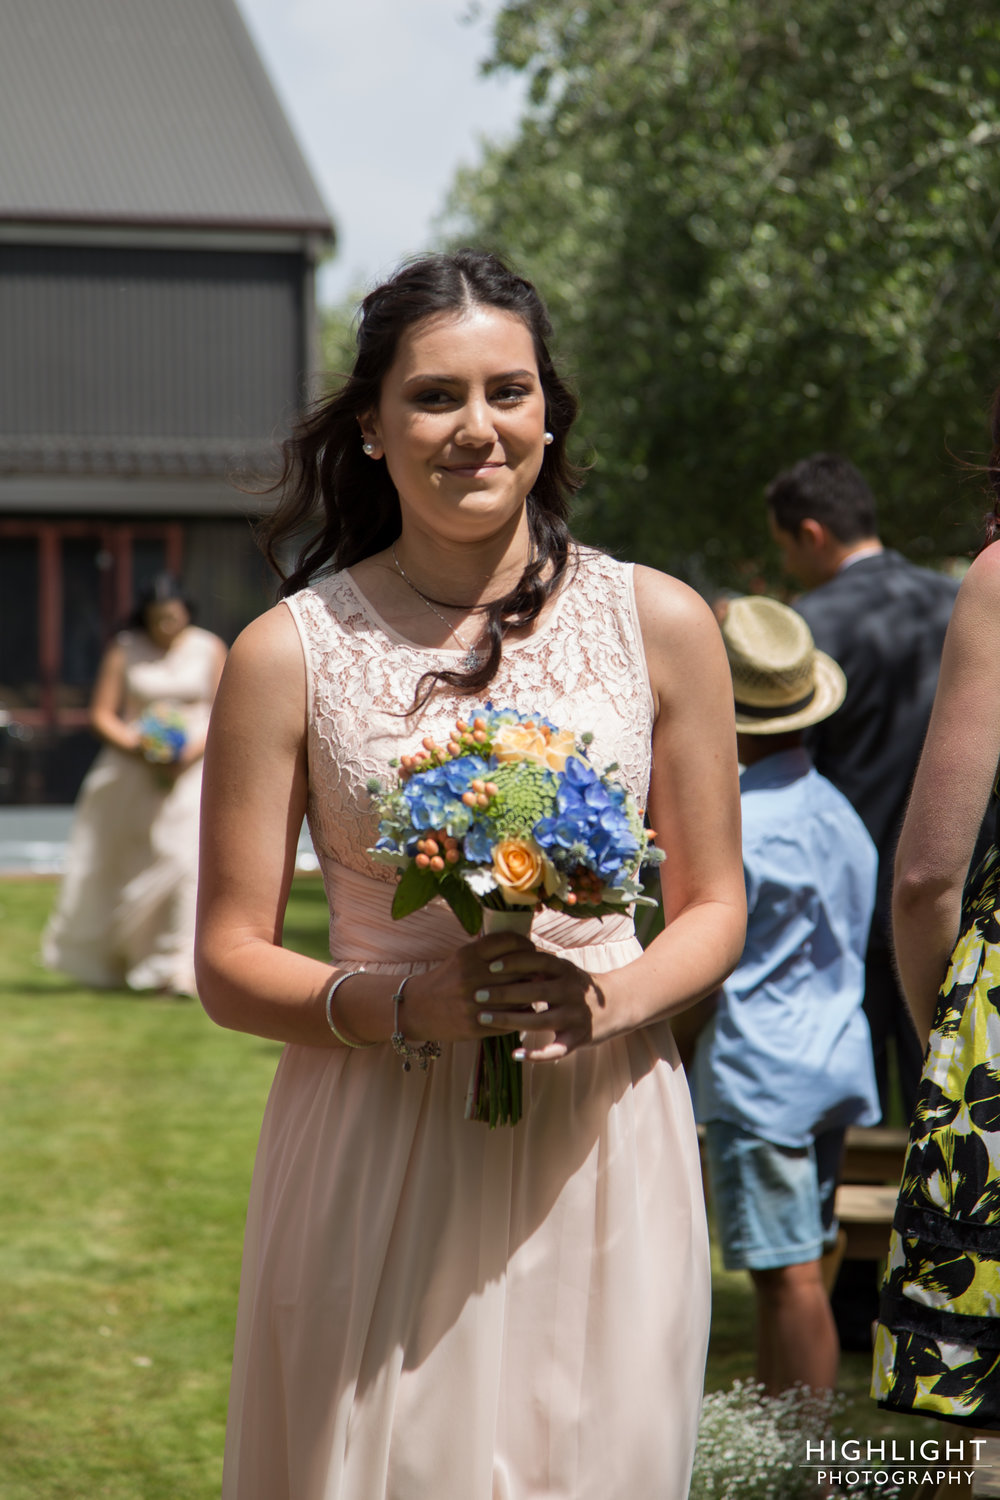 jasmine-kara-highlight-wedding-photography-new-zealand